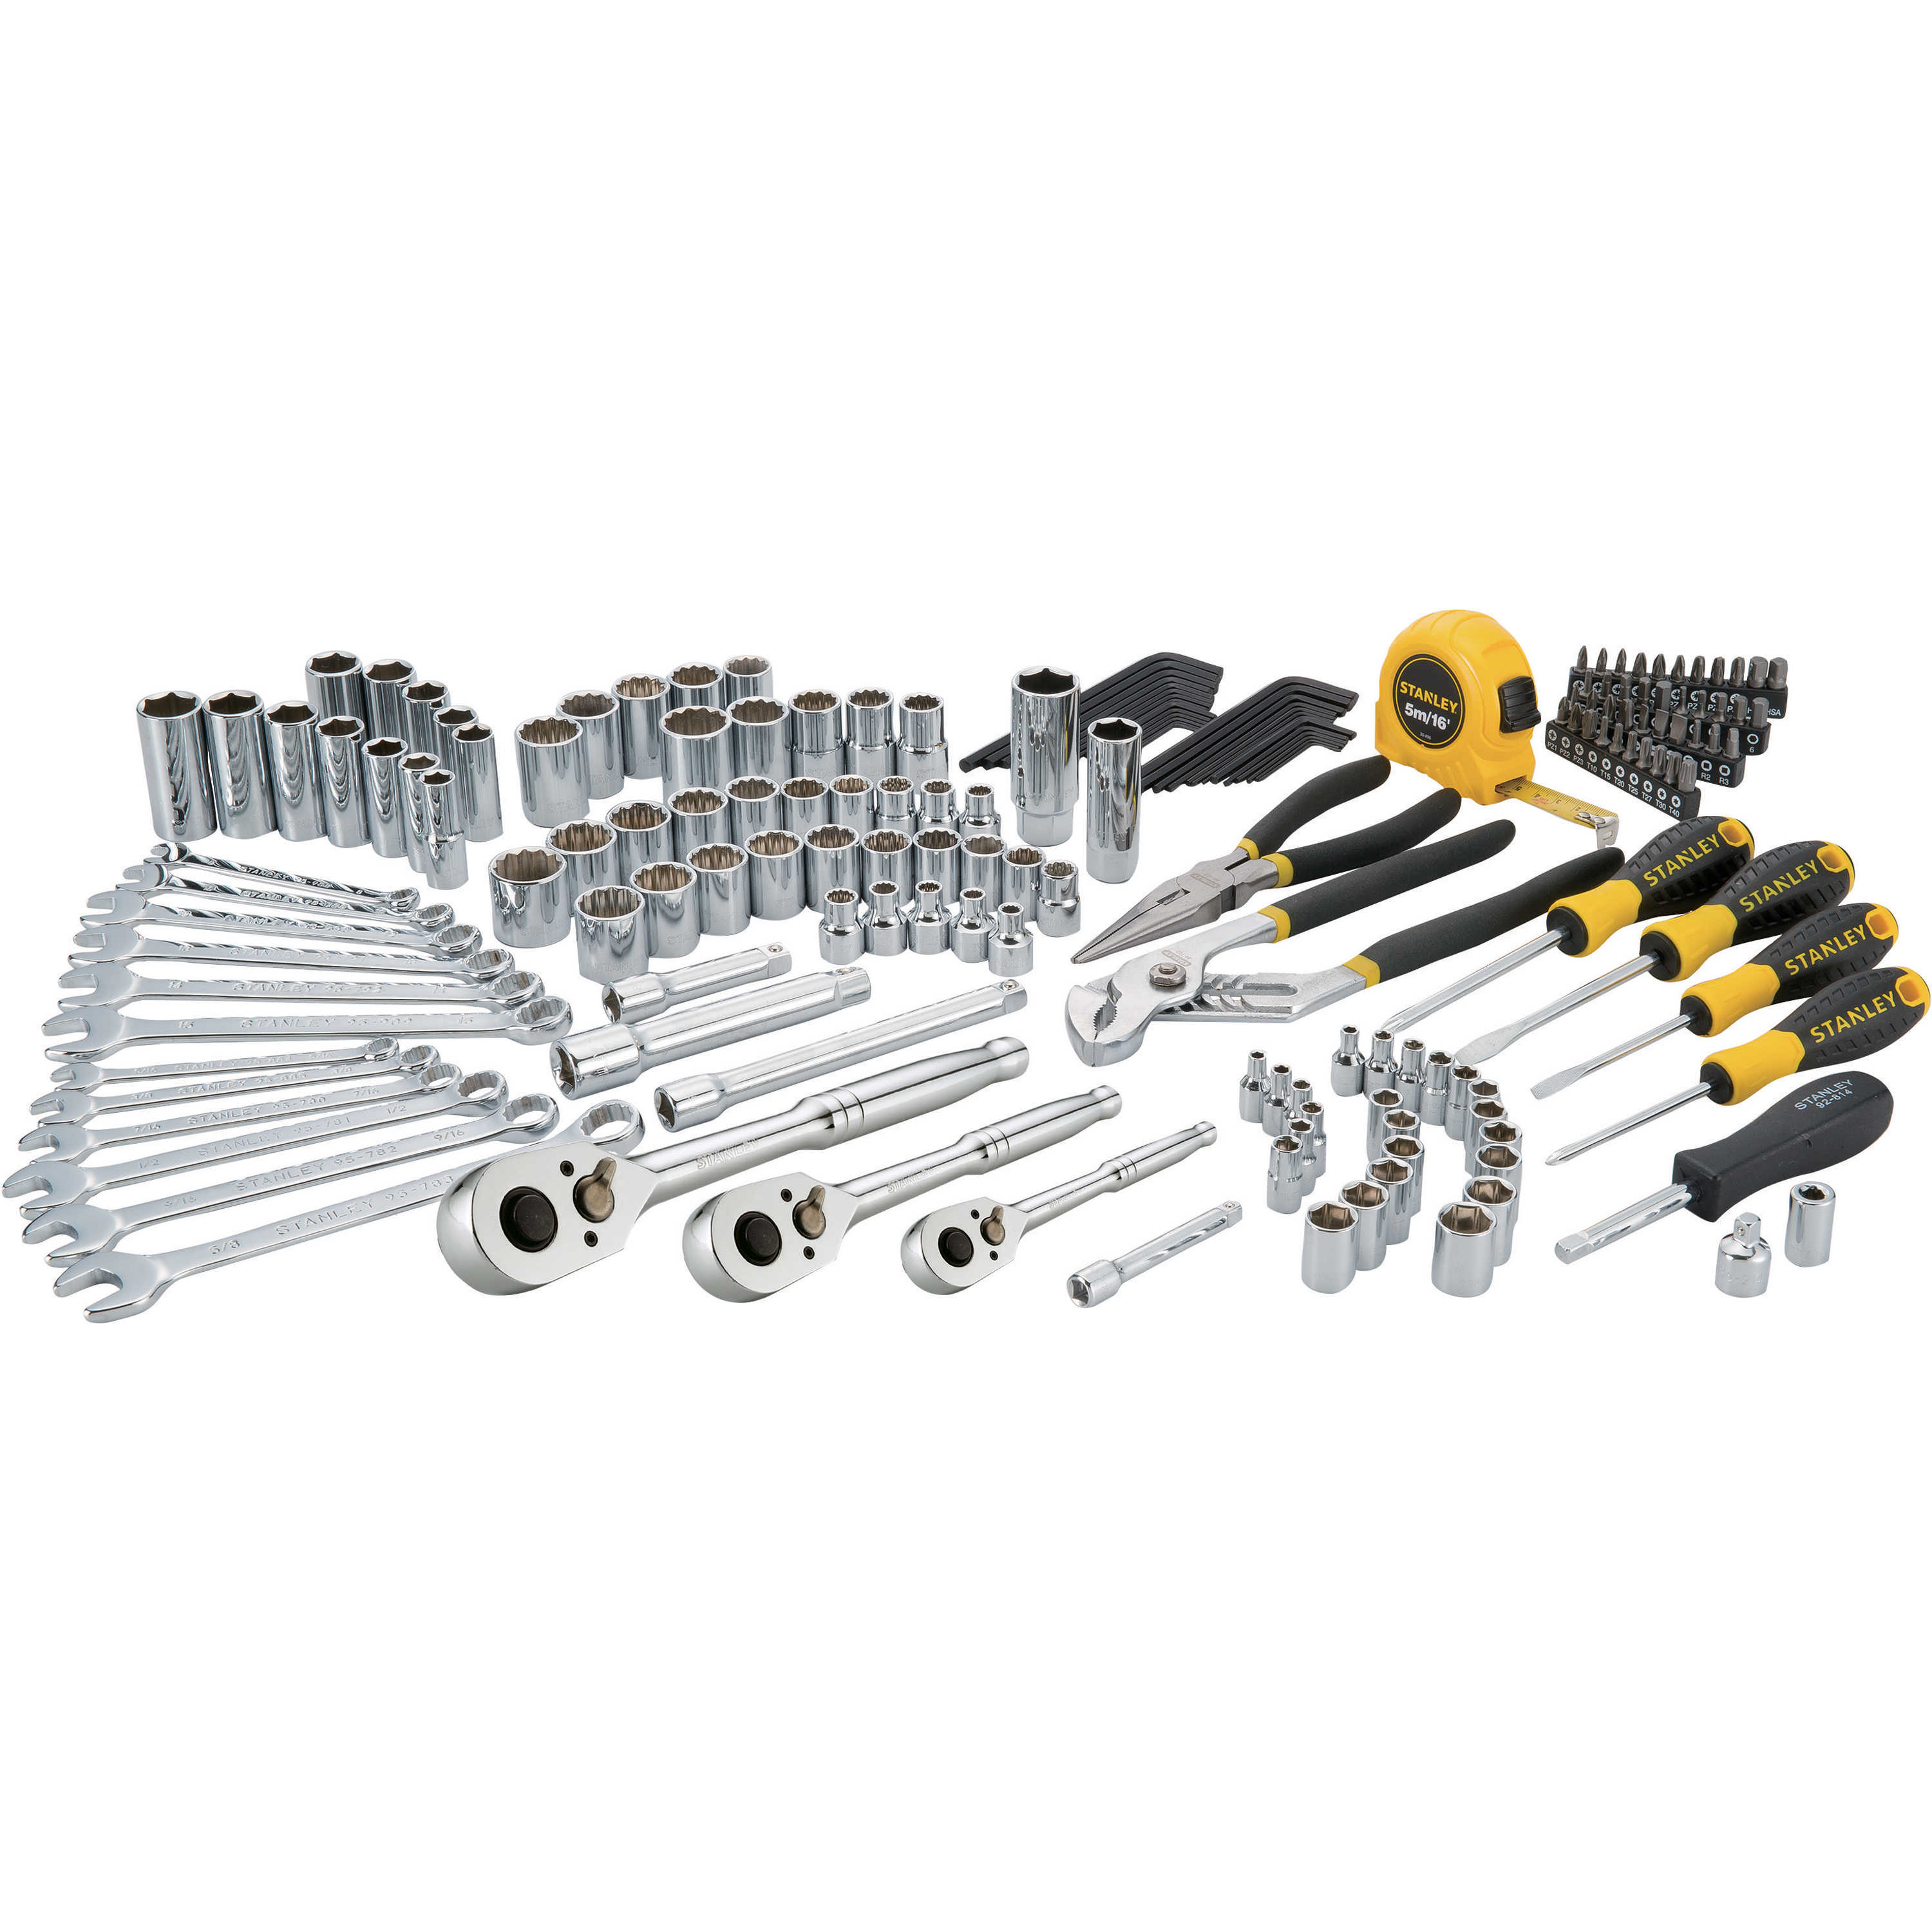 STANLEY STMT81031 170pc Mixed Tool Set